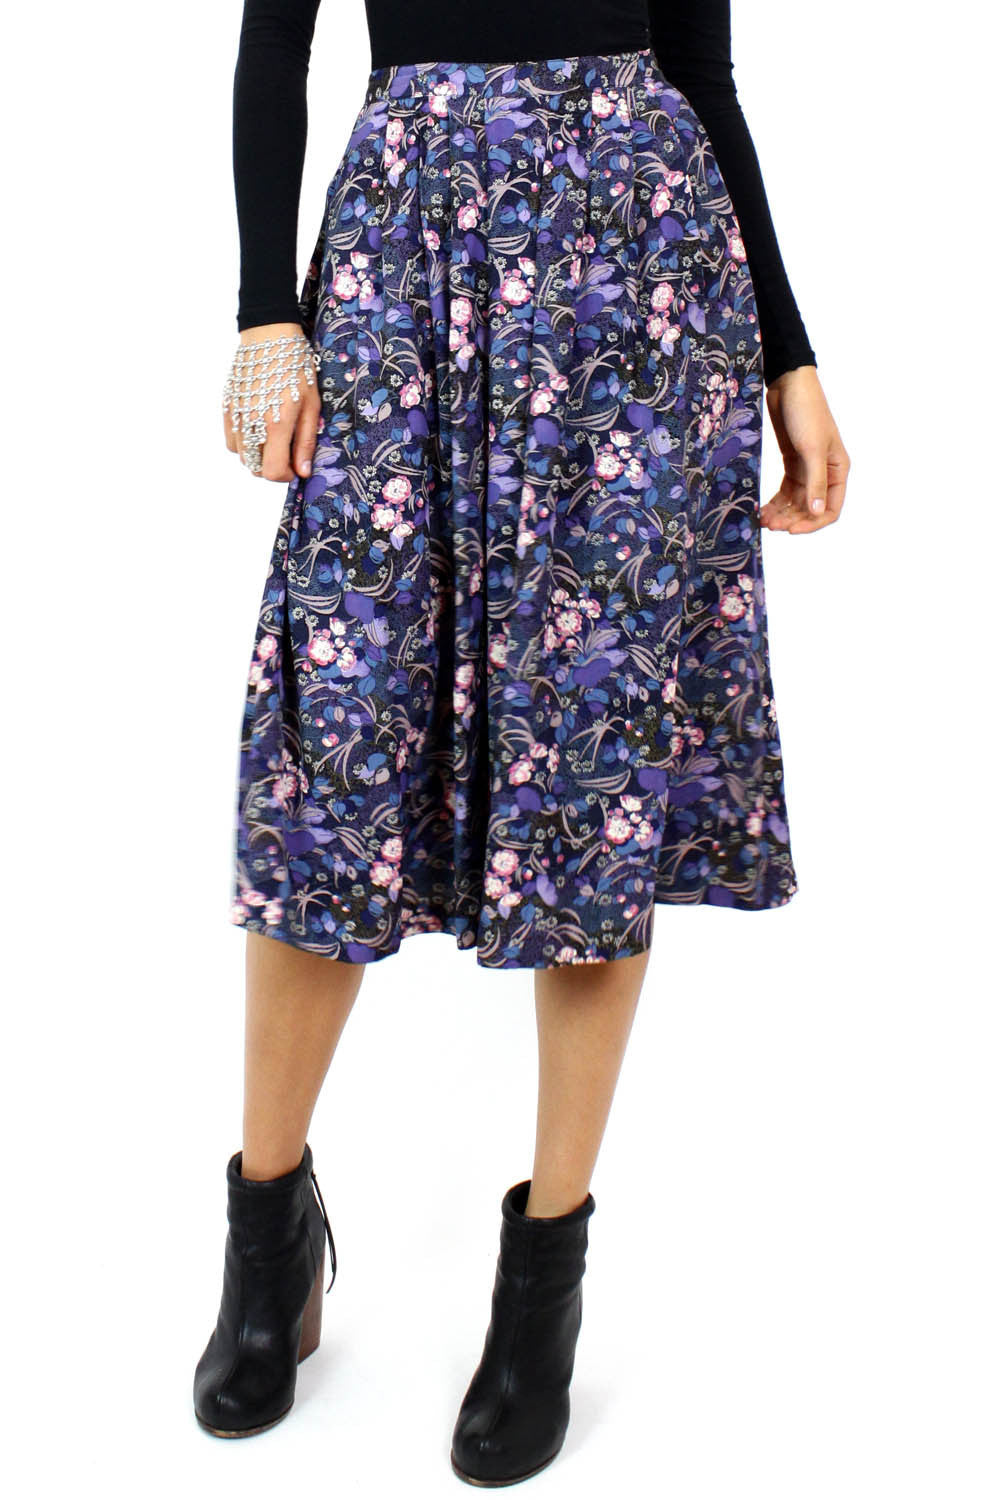 Evelyn garden skirt M/L